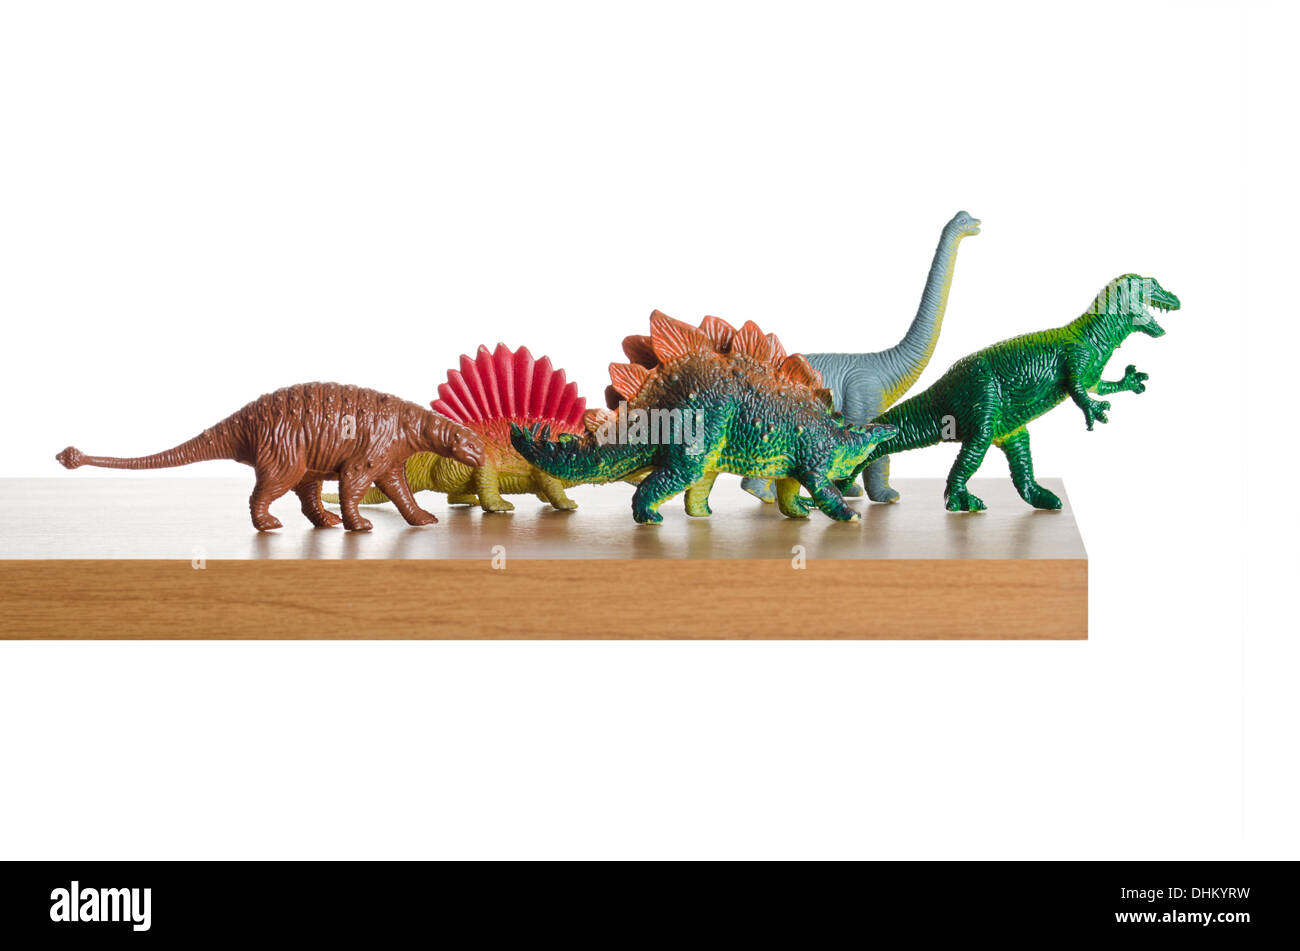 Dinosaurs walking off a cliff - Stock Image